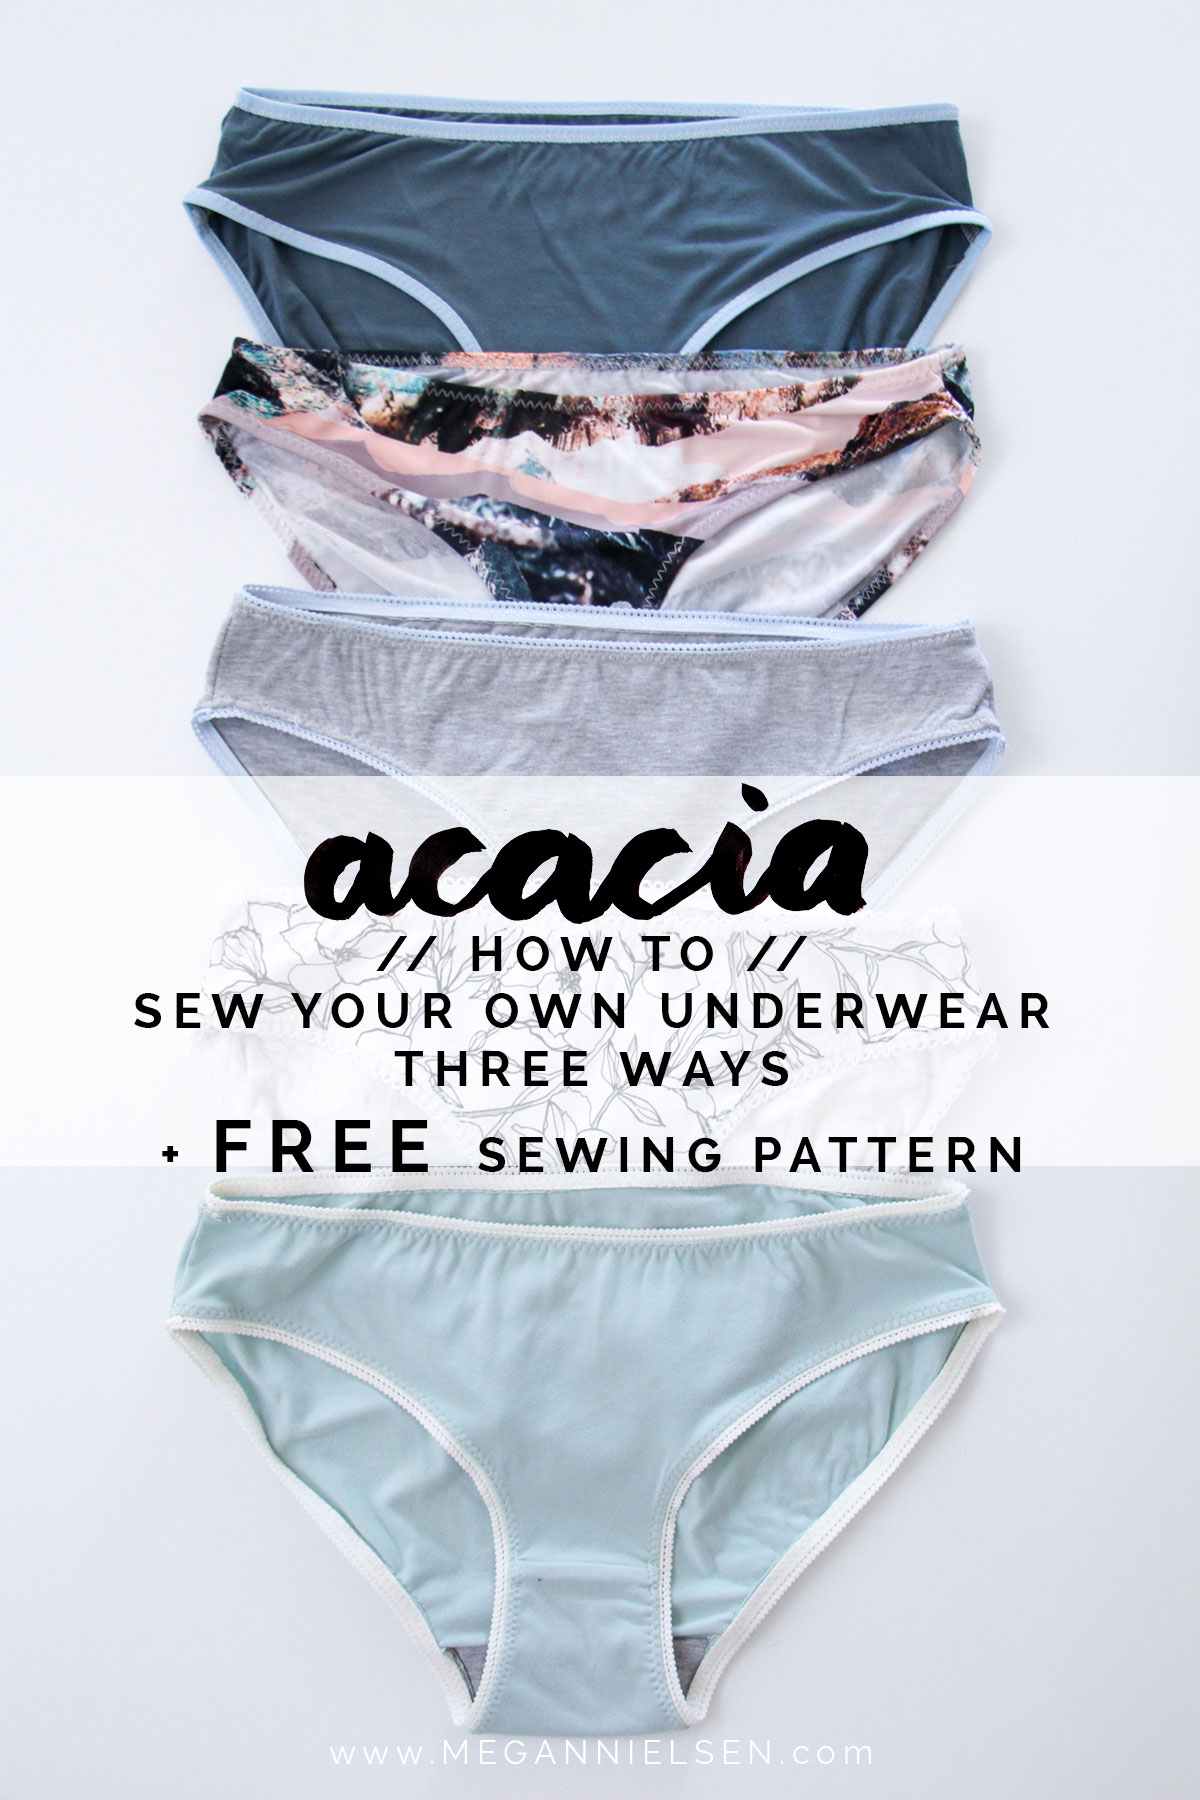 How to sew your own underwear with FREE sewing pattern by Megan Nielsen     includes ... 07d4290f4